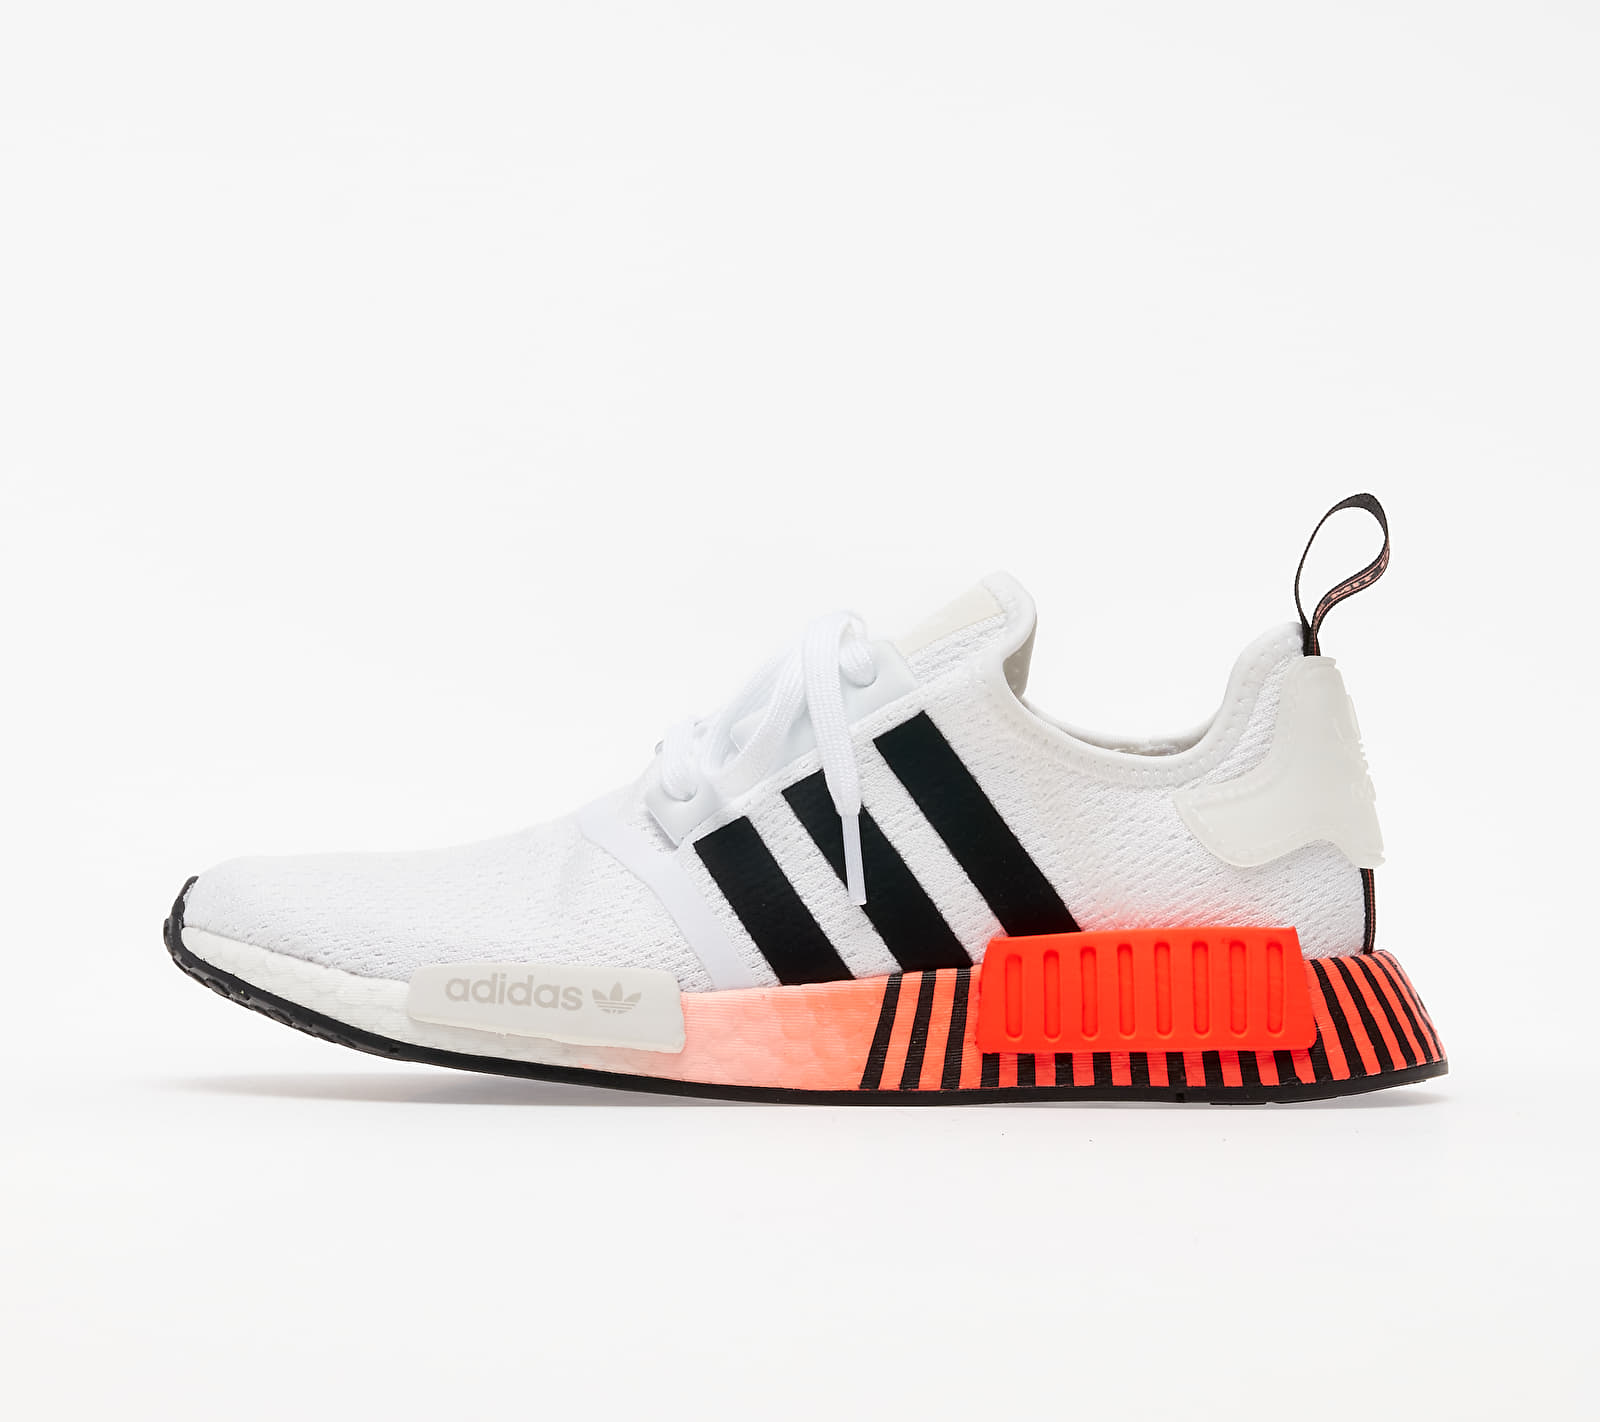 adidas NMD_R1 Ftw White/ Core Black/ Solid Red EUR 44